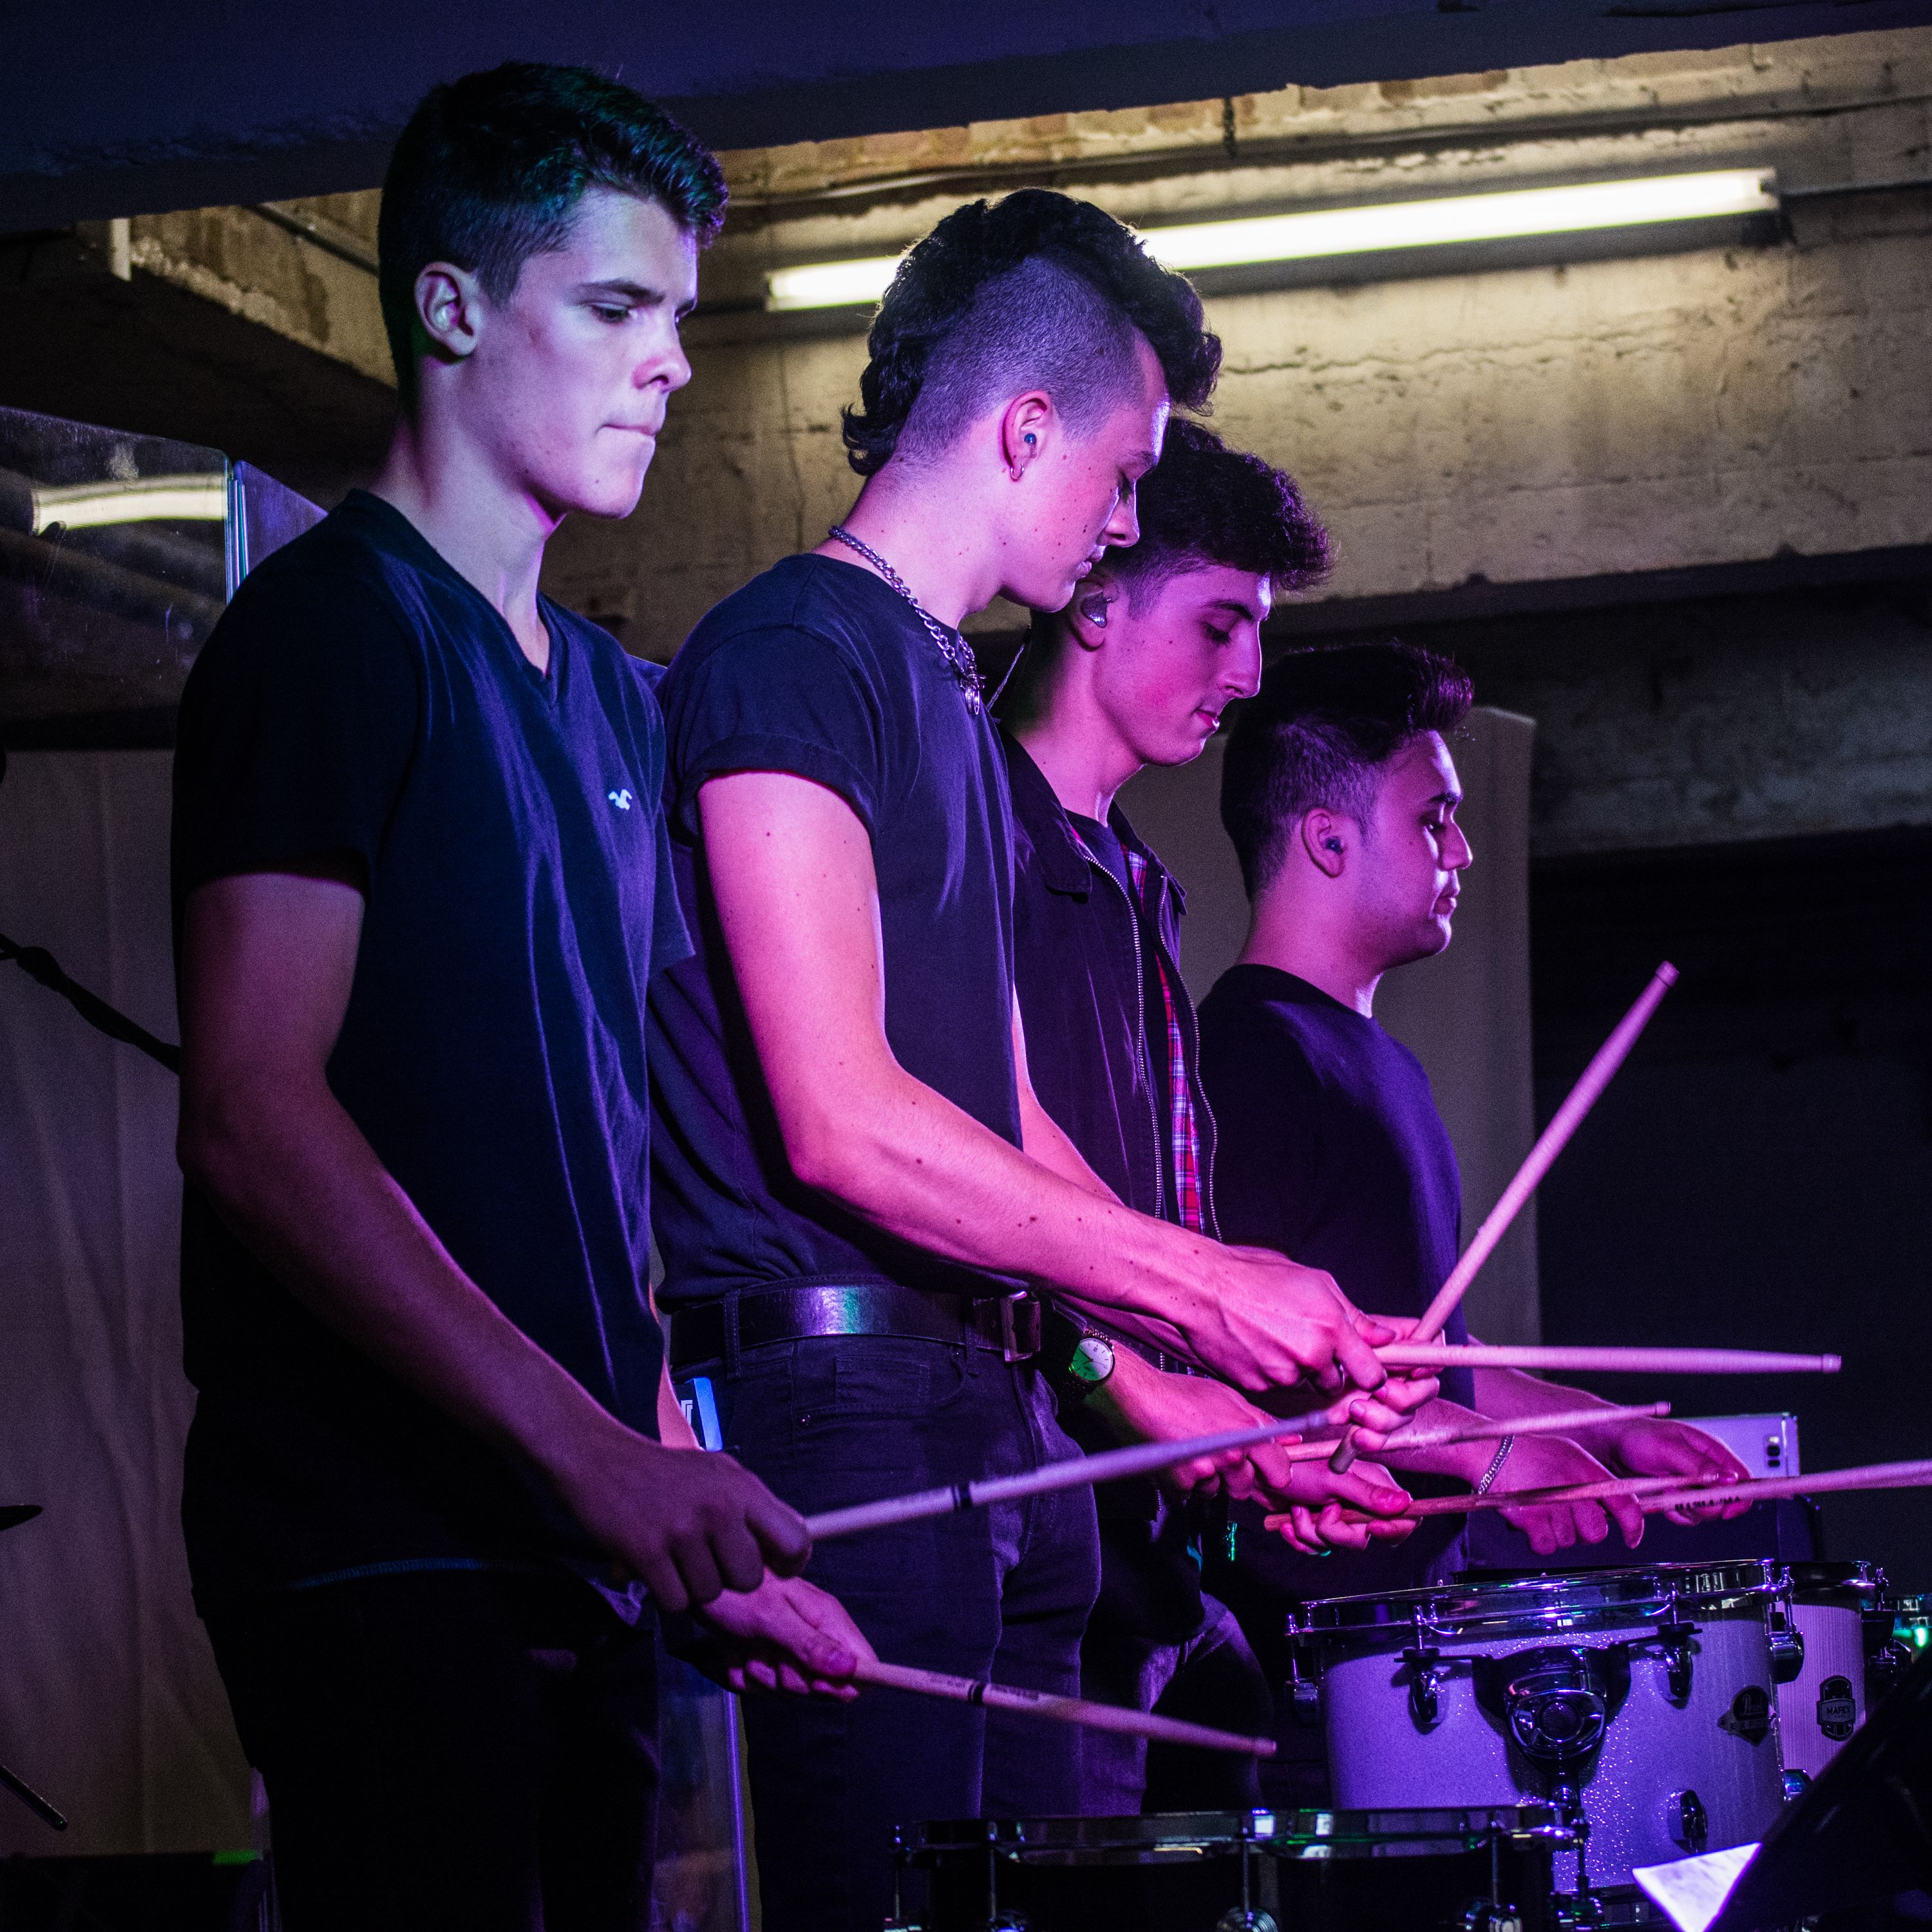 Students playing the drums during a live performance